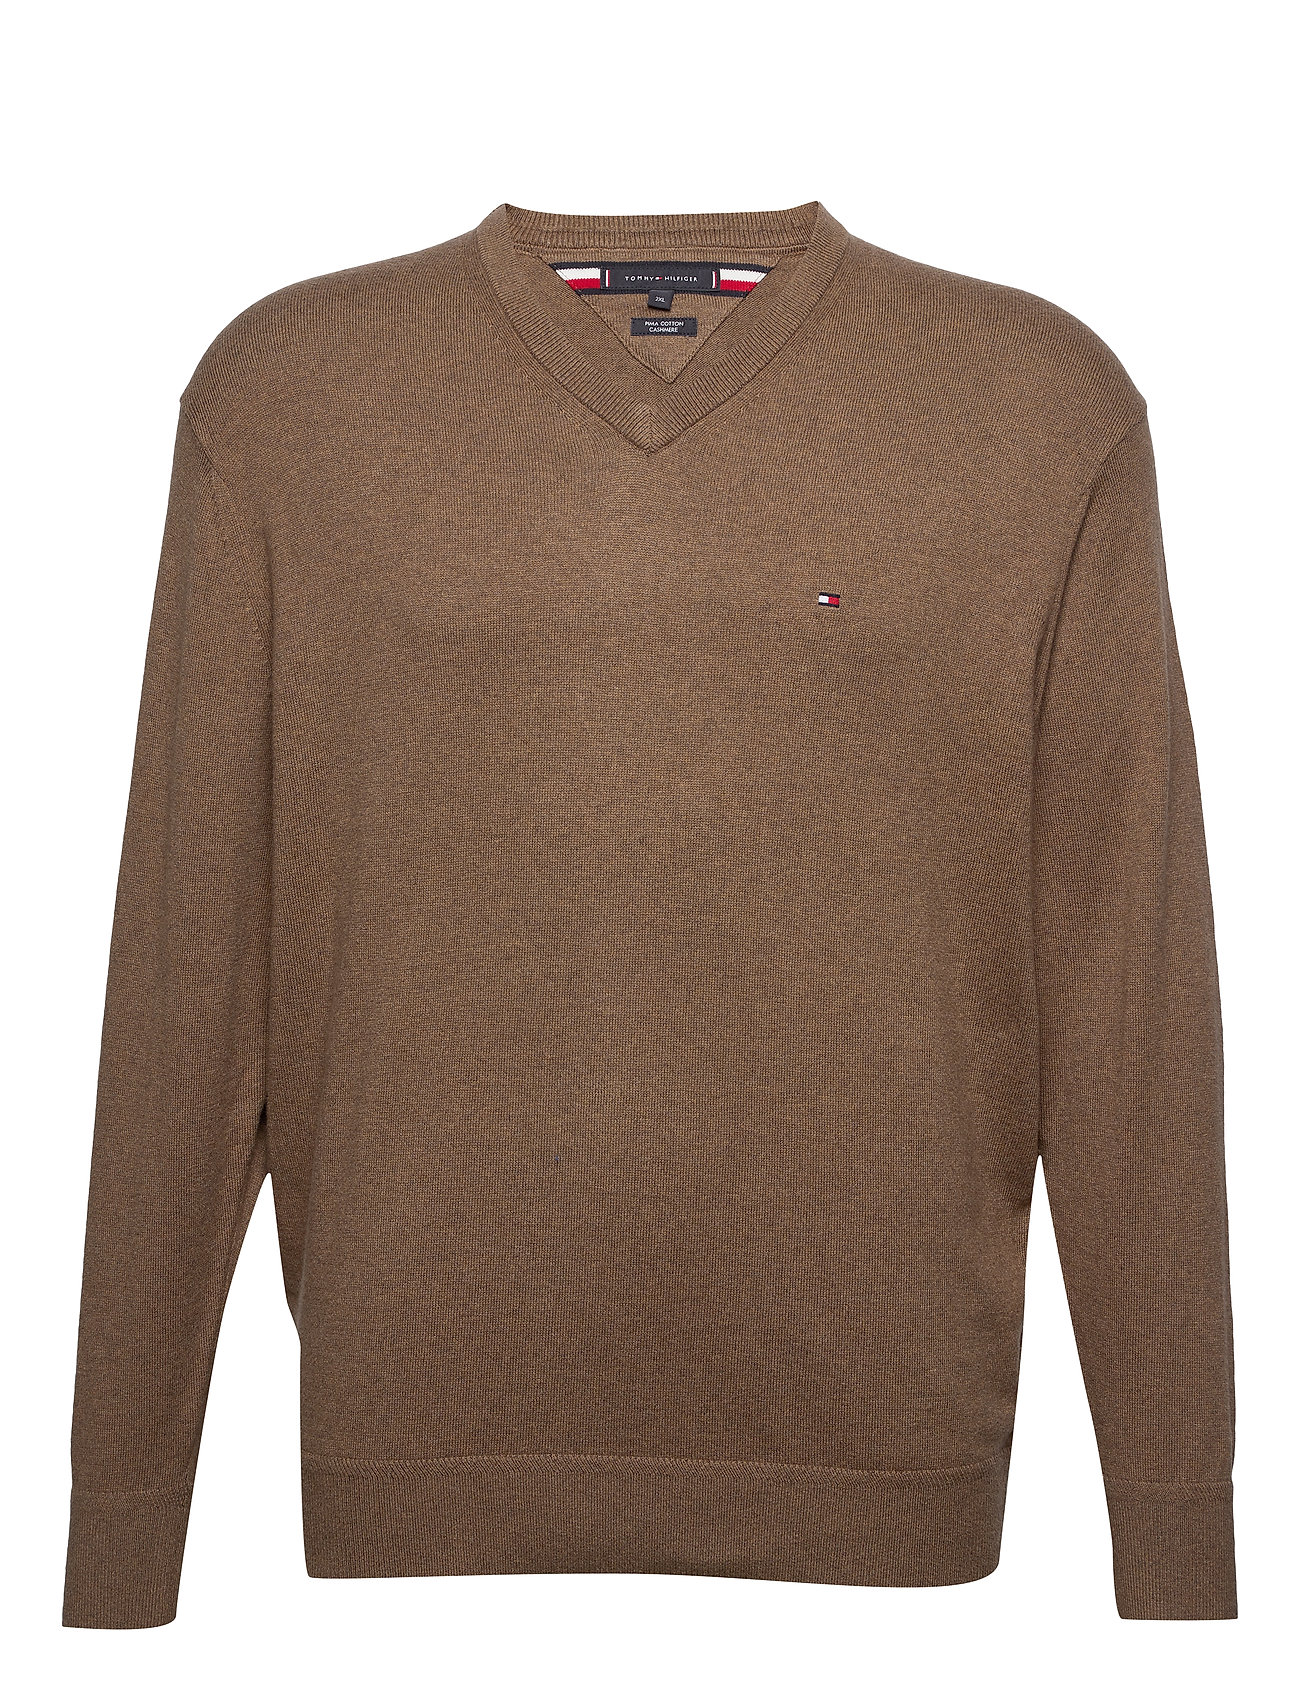 Tommy Hilfiger Big & Tall BT-PIMA COTTON CASHM - WALNUT HEATHER